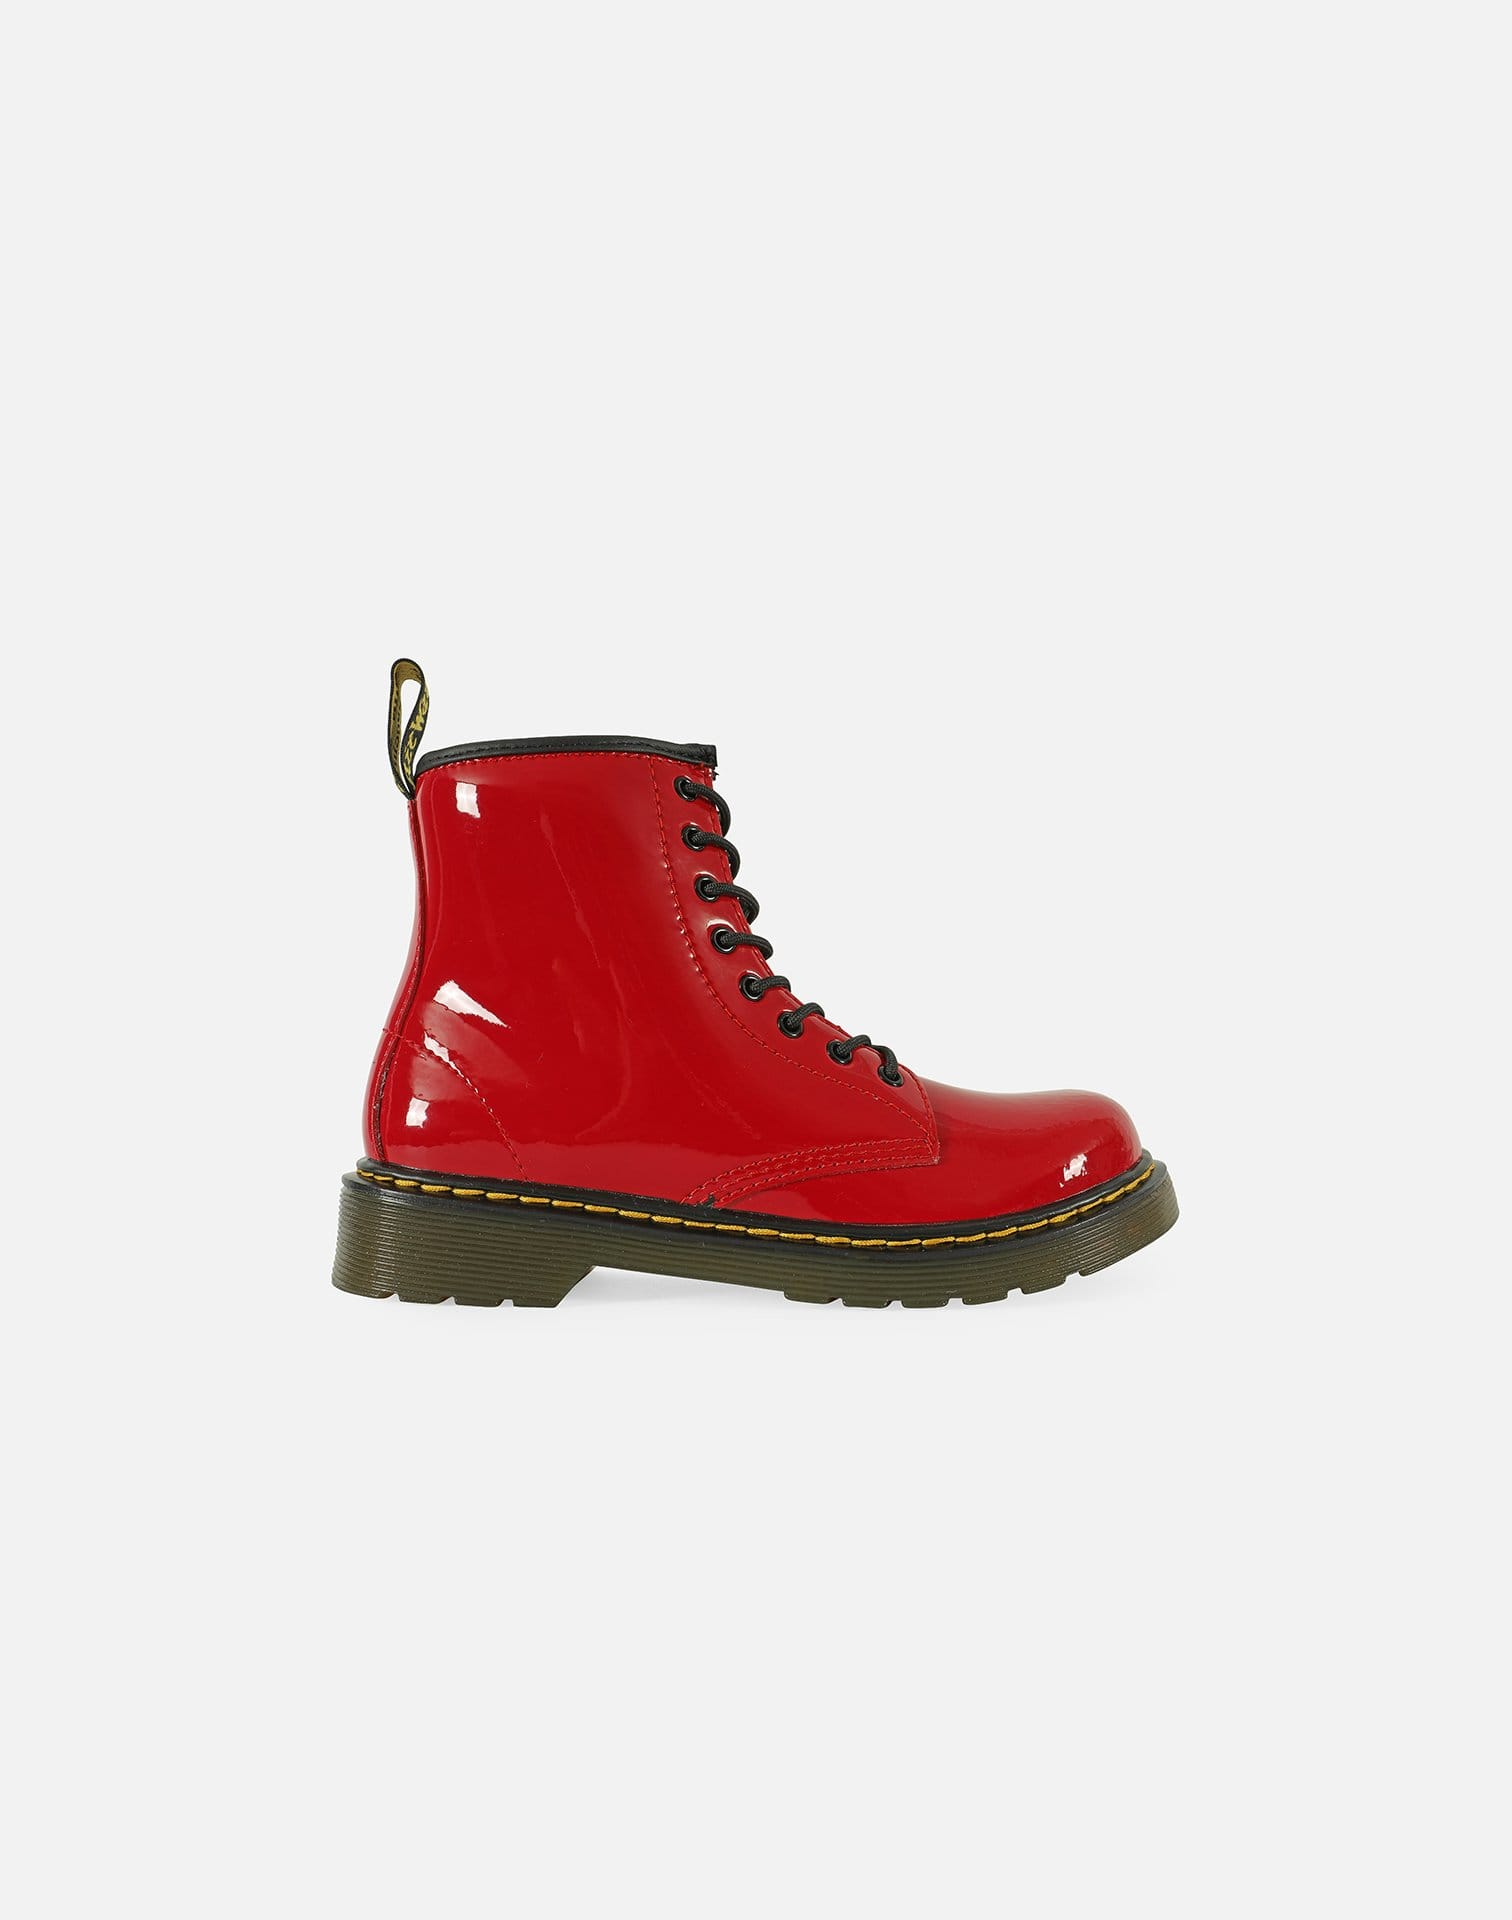 Dr. Martens DTLR Exclusive Delaney Patent Leather Boots Pre-School